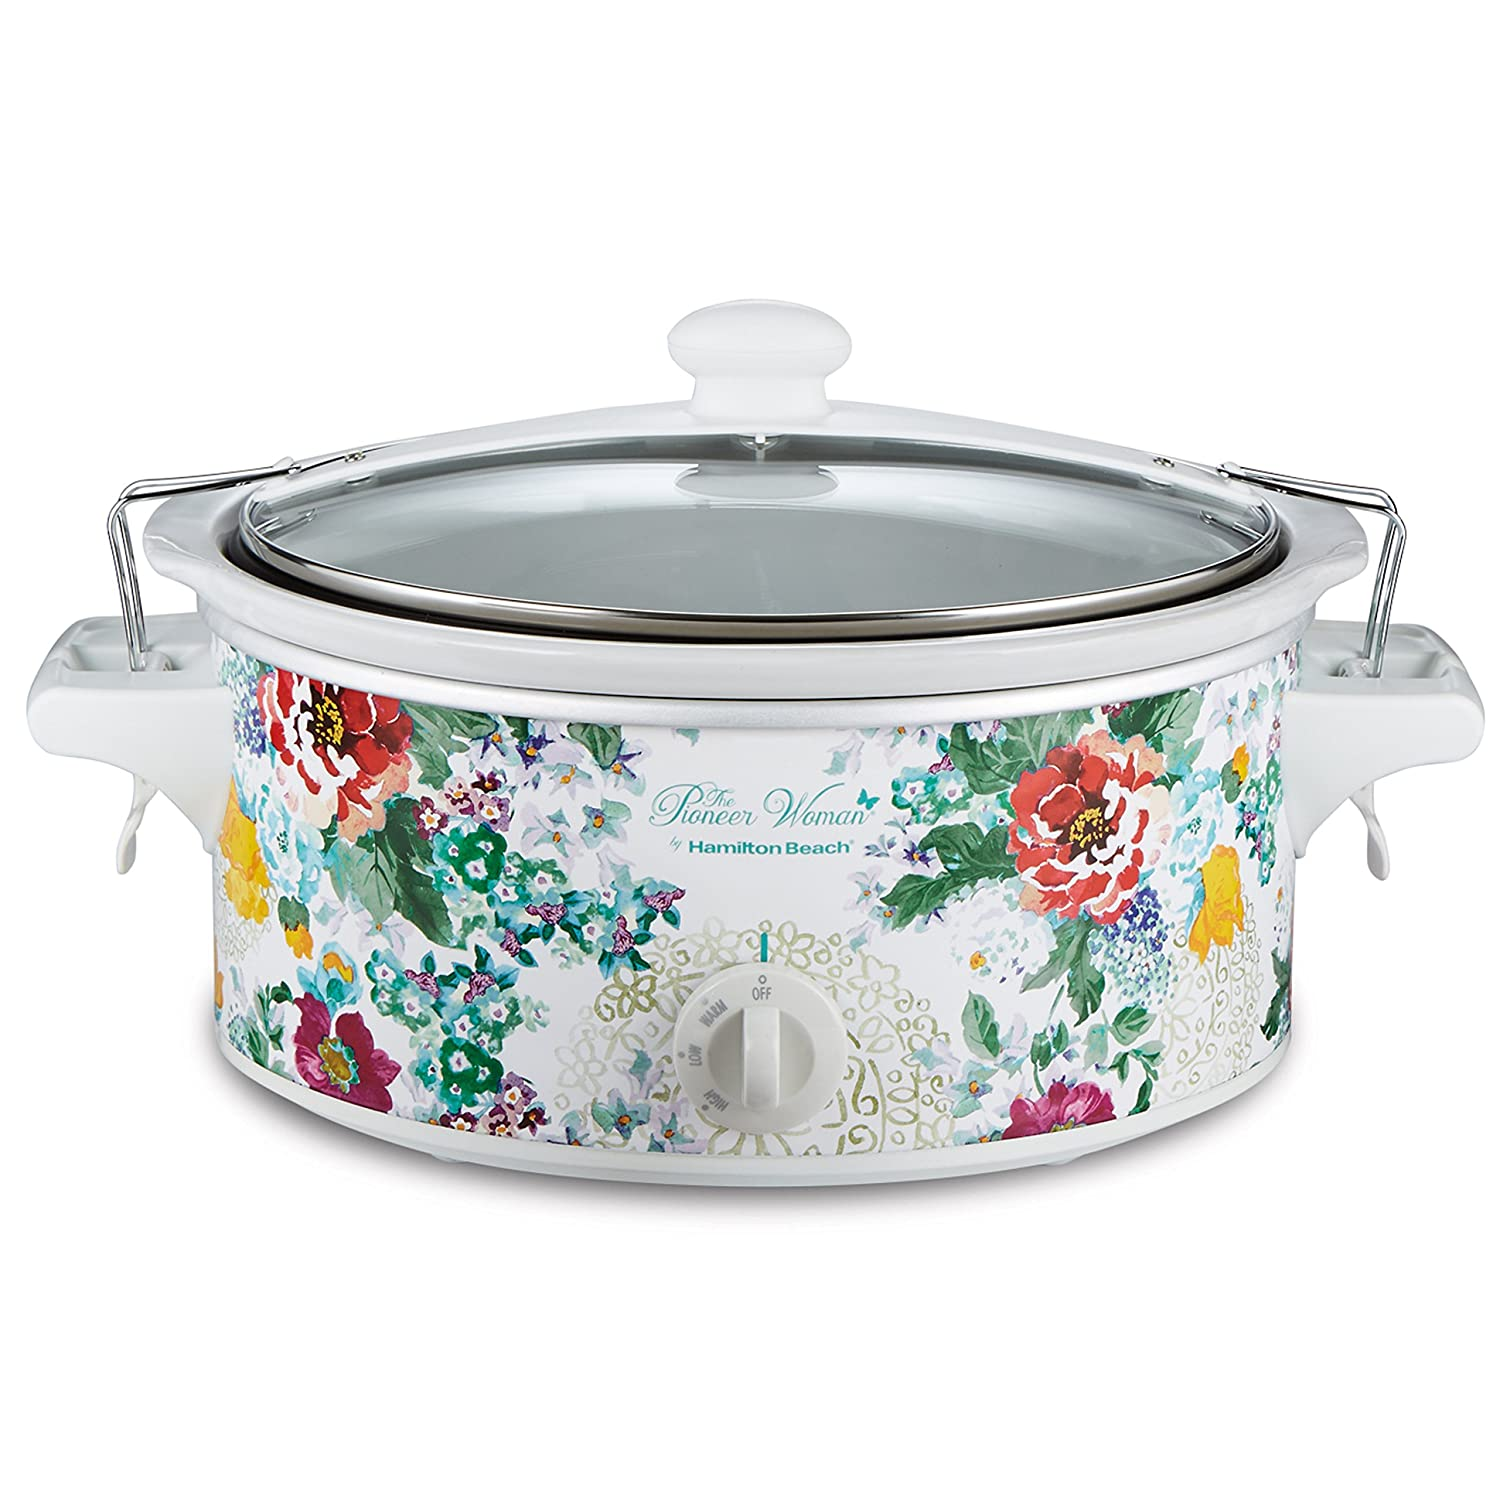 The Pioneer Woman 6 QT Country Garden Portable Slow Cooker with Sealed Lid 33364